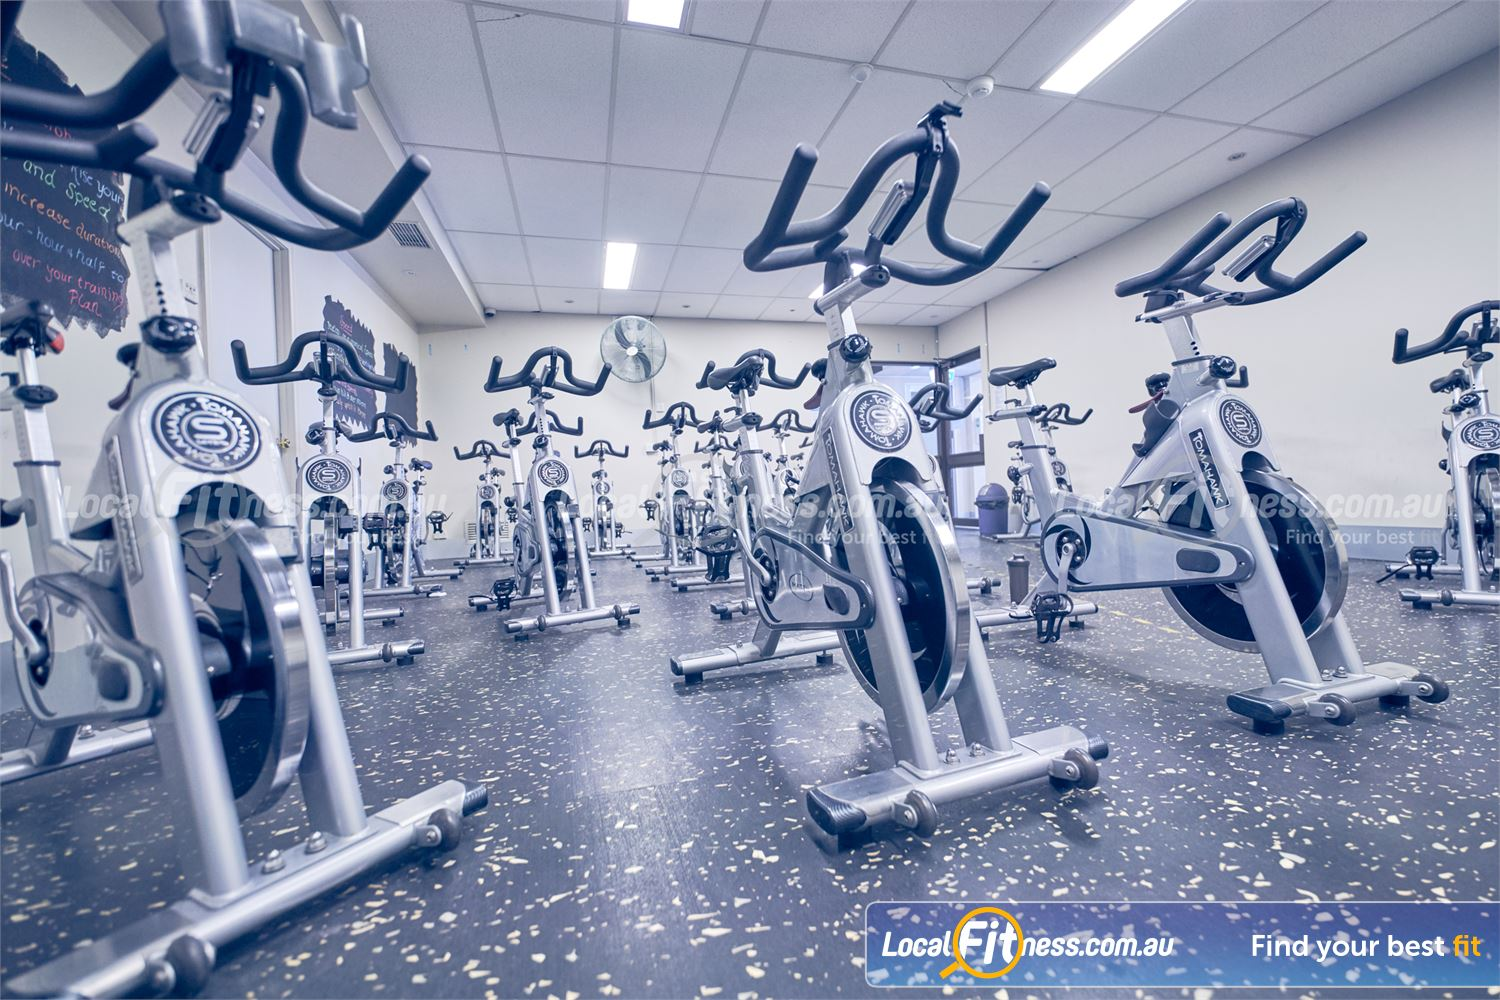 Goodlife Health Clubs Near Springvale South The dedicated Dingley spin cycle studio.